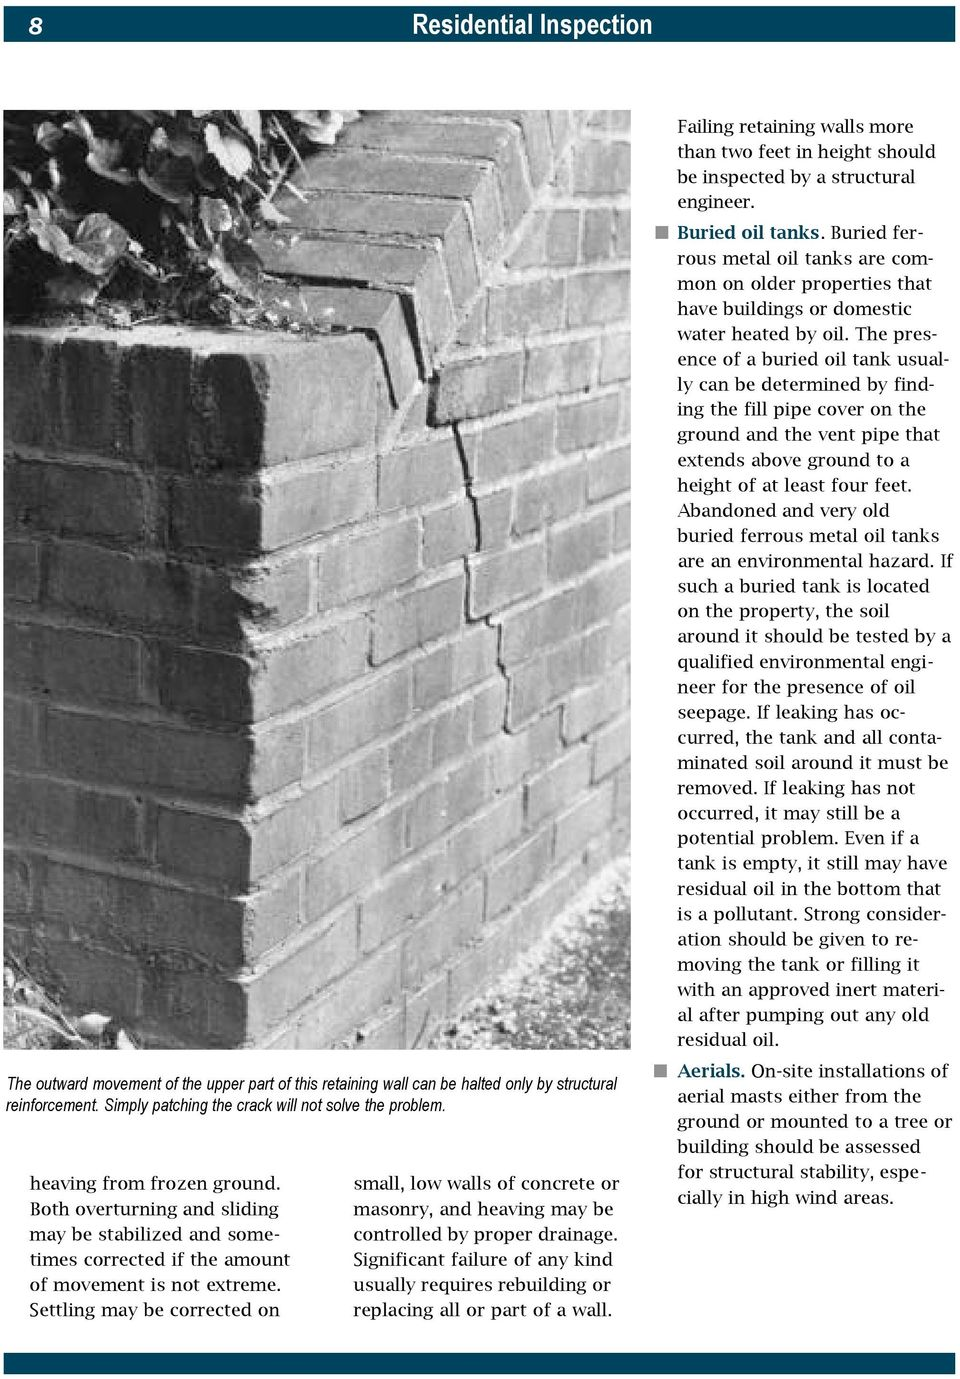 Settling may be corrected on small, low walls of concrete or masonry, and heaving may be controlled by proper drainage.